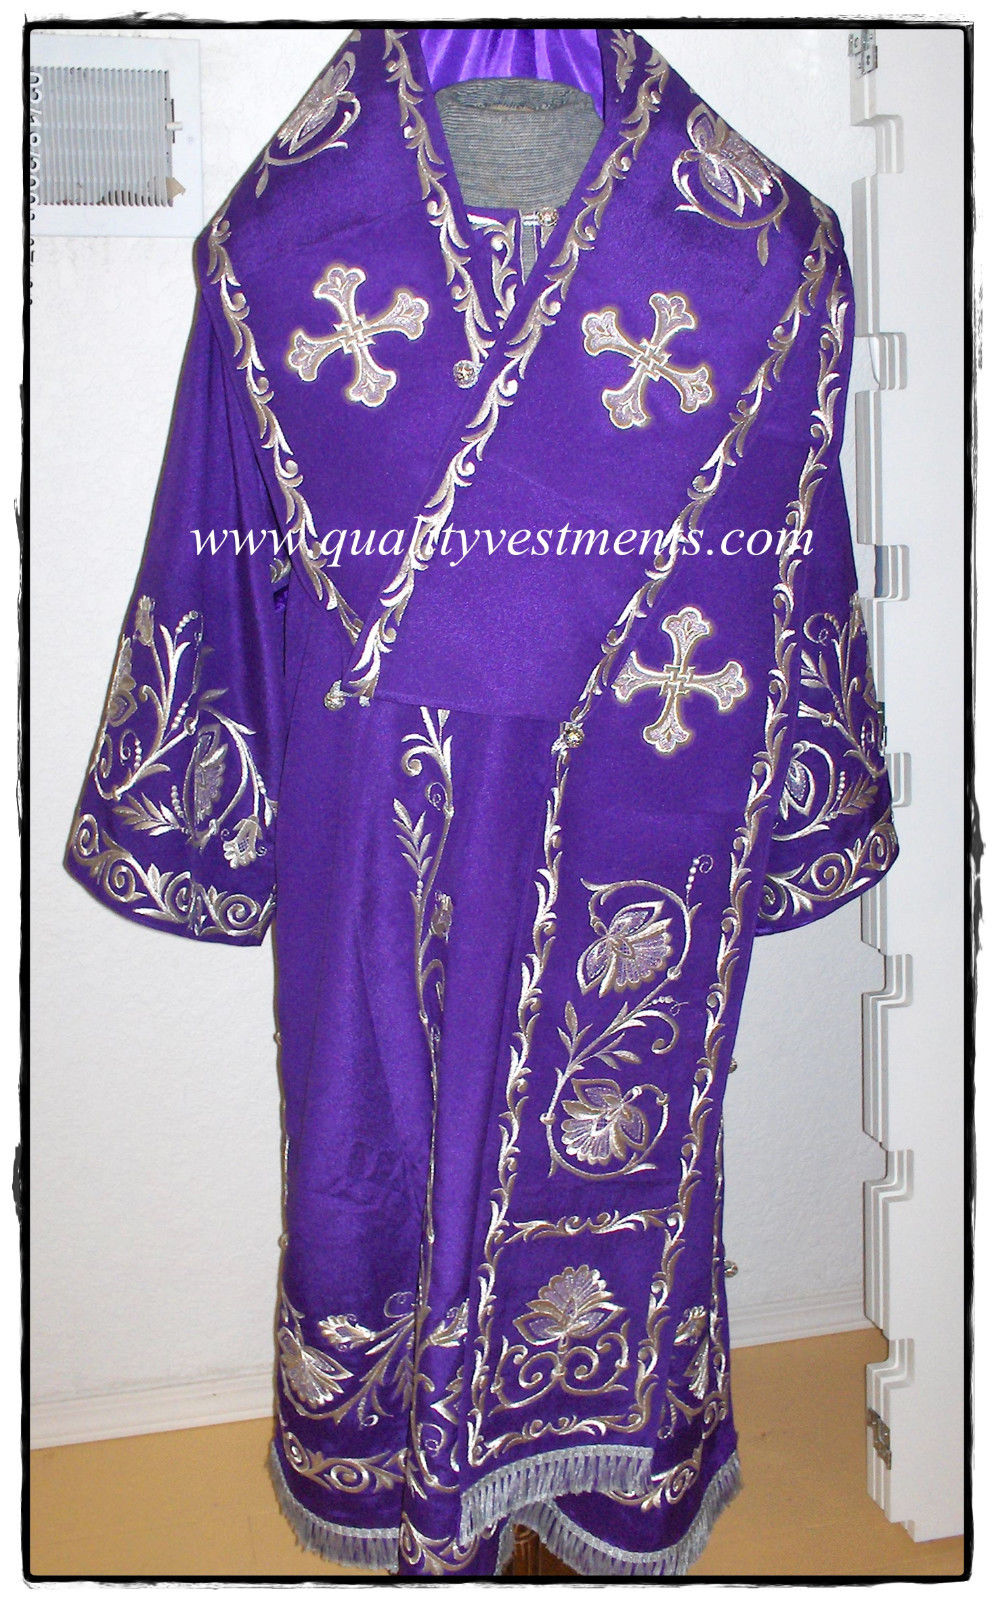 Orthodox Bishop's Embroidered Vestments Purple Gold or any color